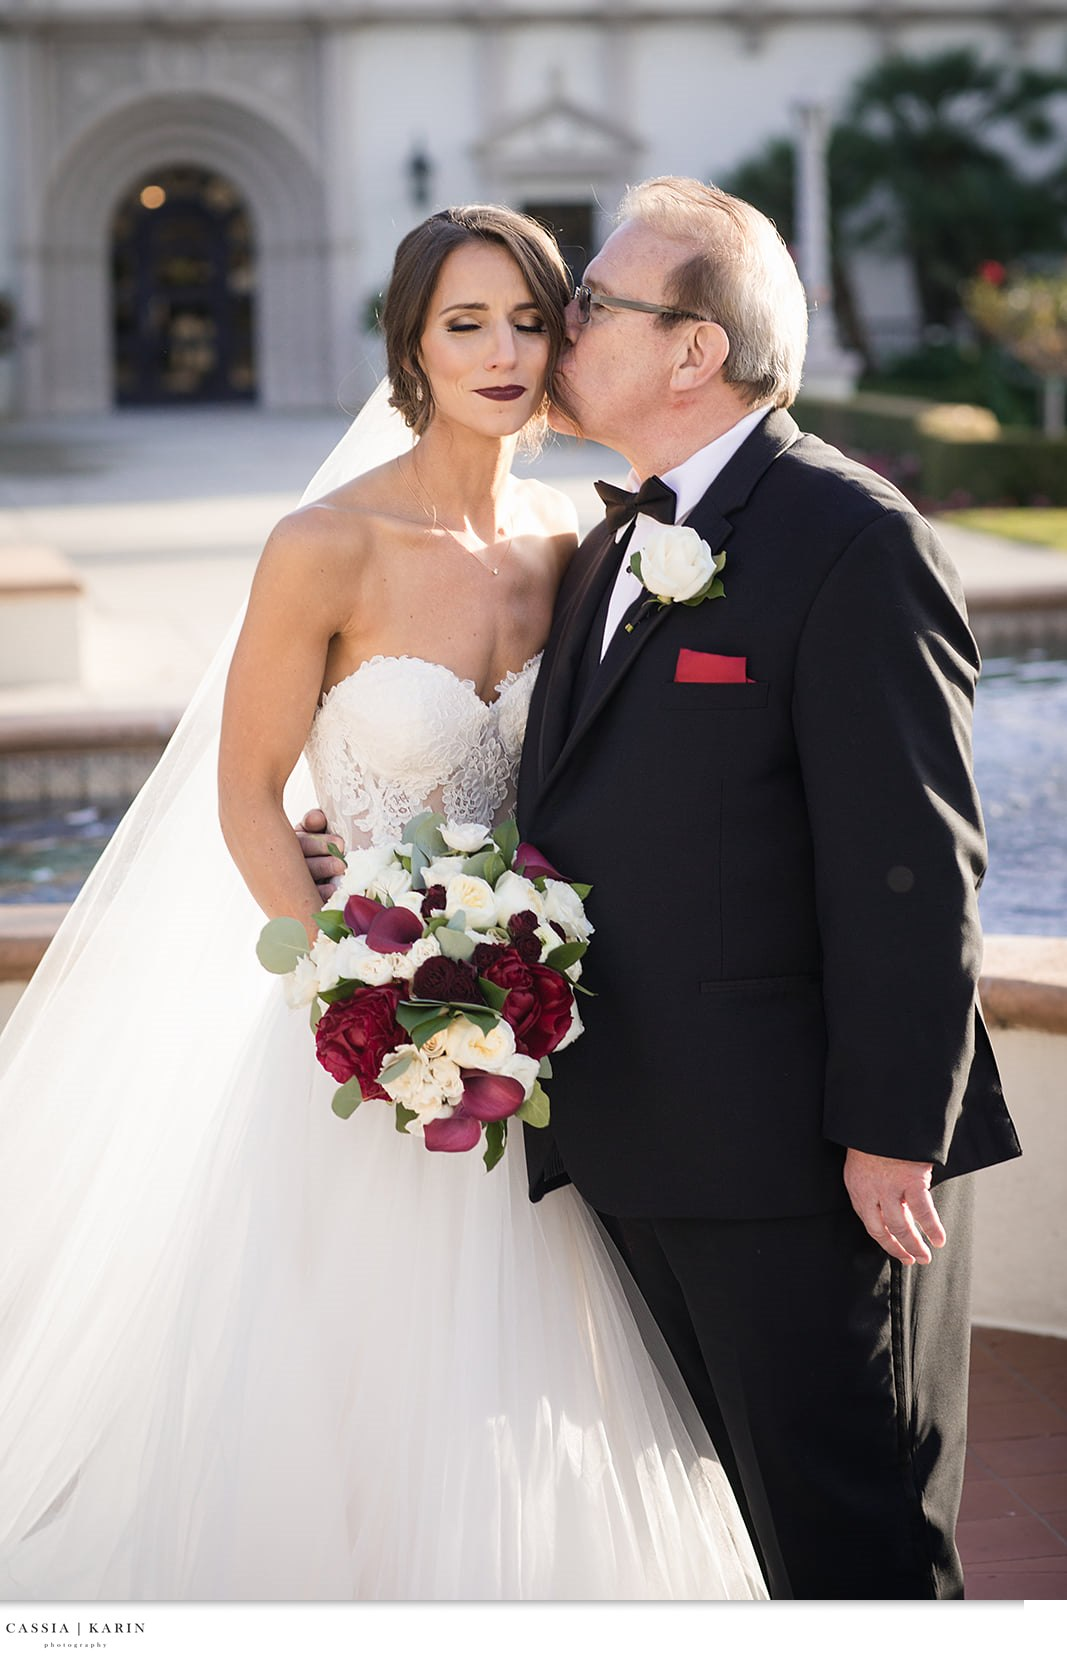 Brunette bride with side up-do in veil and bold lip. Bride with Father of the Bride. Bridal Beauty by Vanity Belle in Orange County (Costa Mesa) and San Diego (La Jolla). thevanitybelle.com